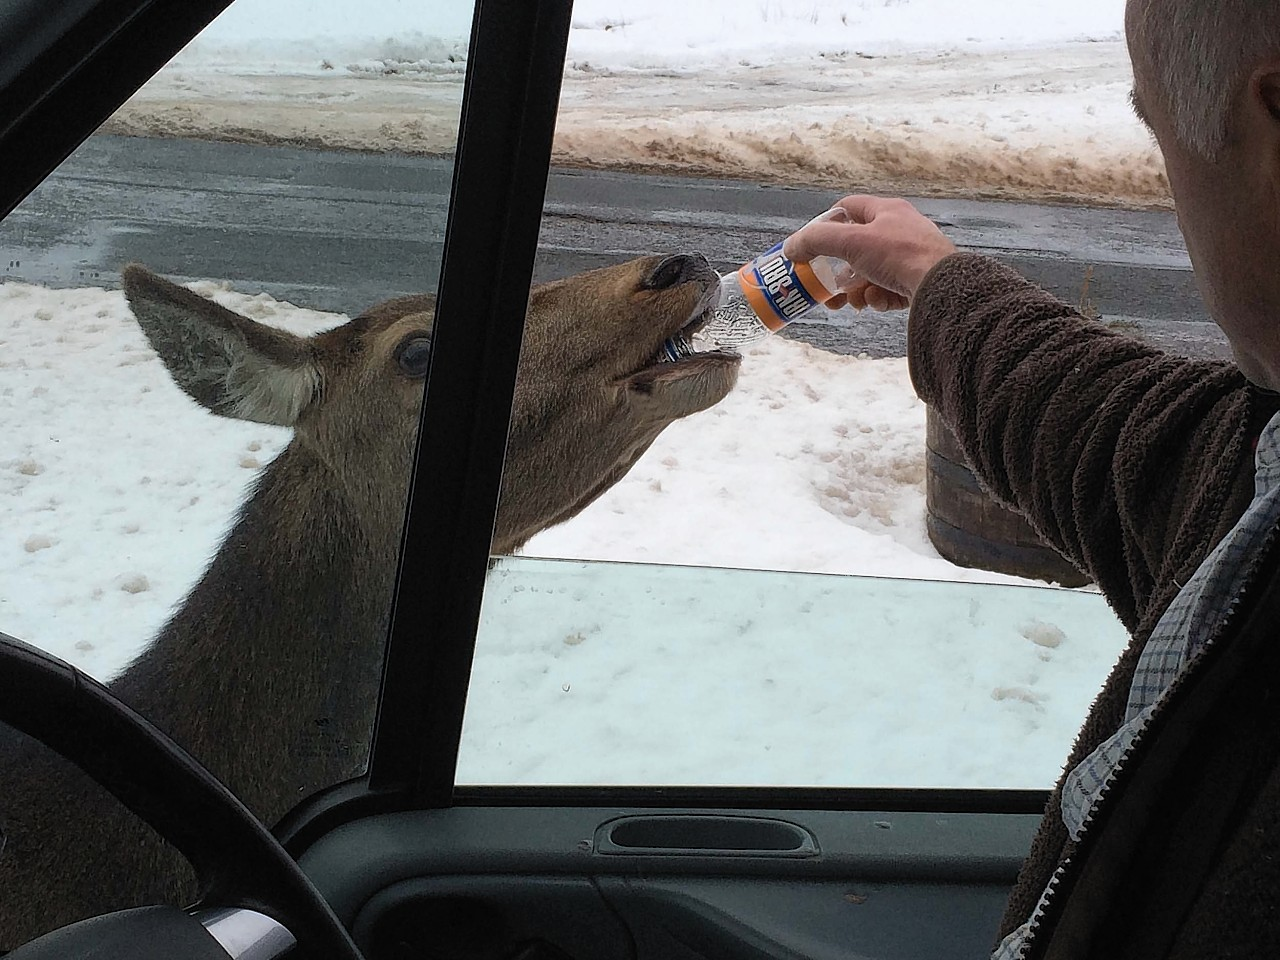 The deer polished off the cheese and onion crisps before enjoying a bottle of Irn Bru